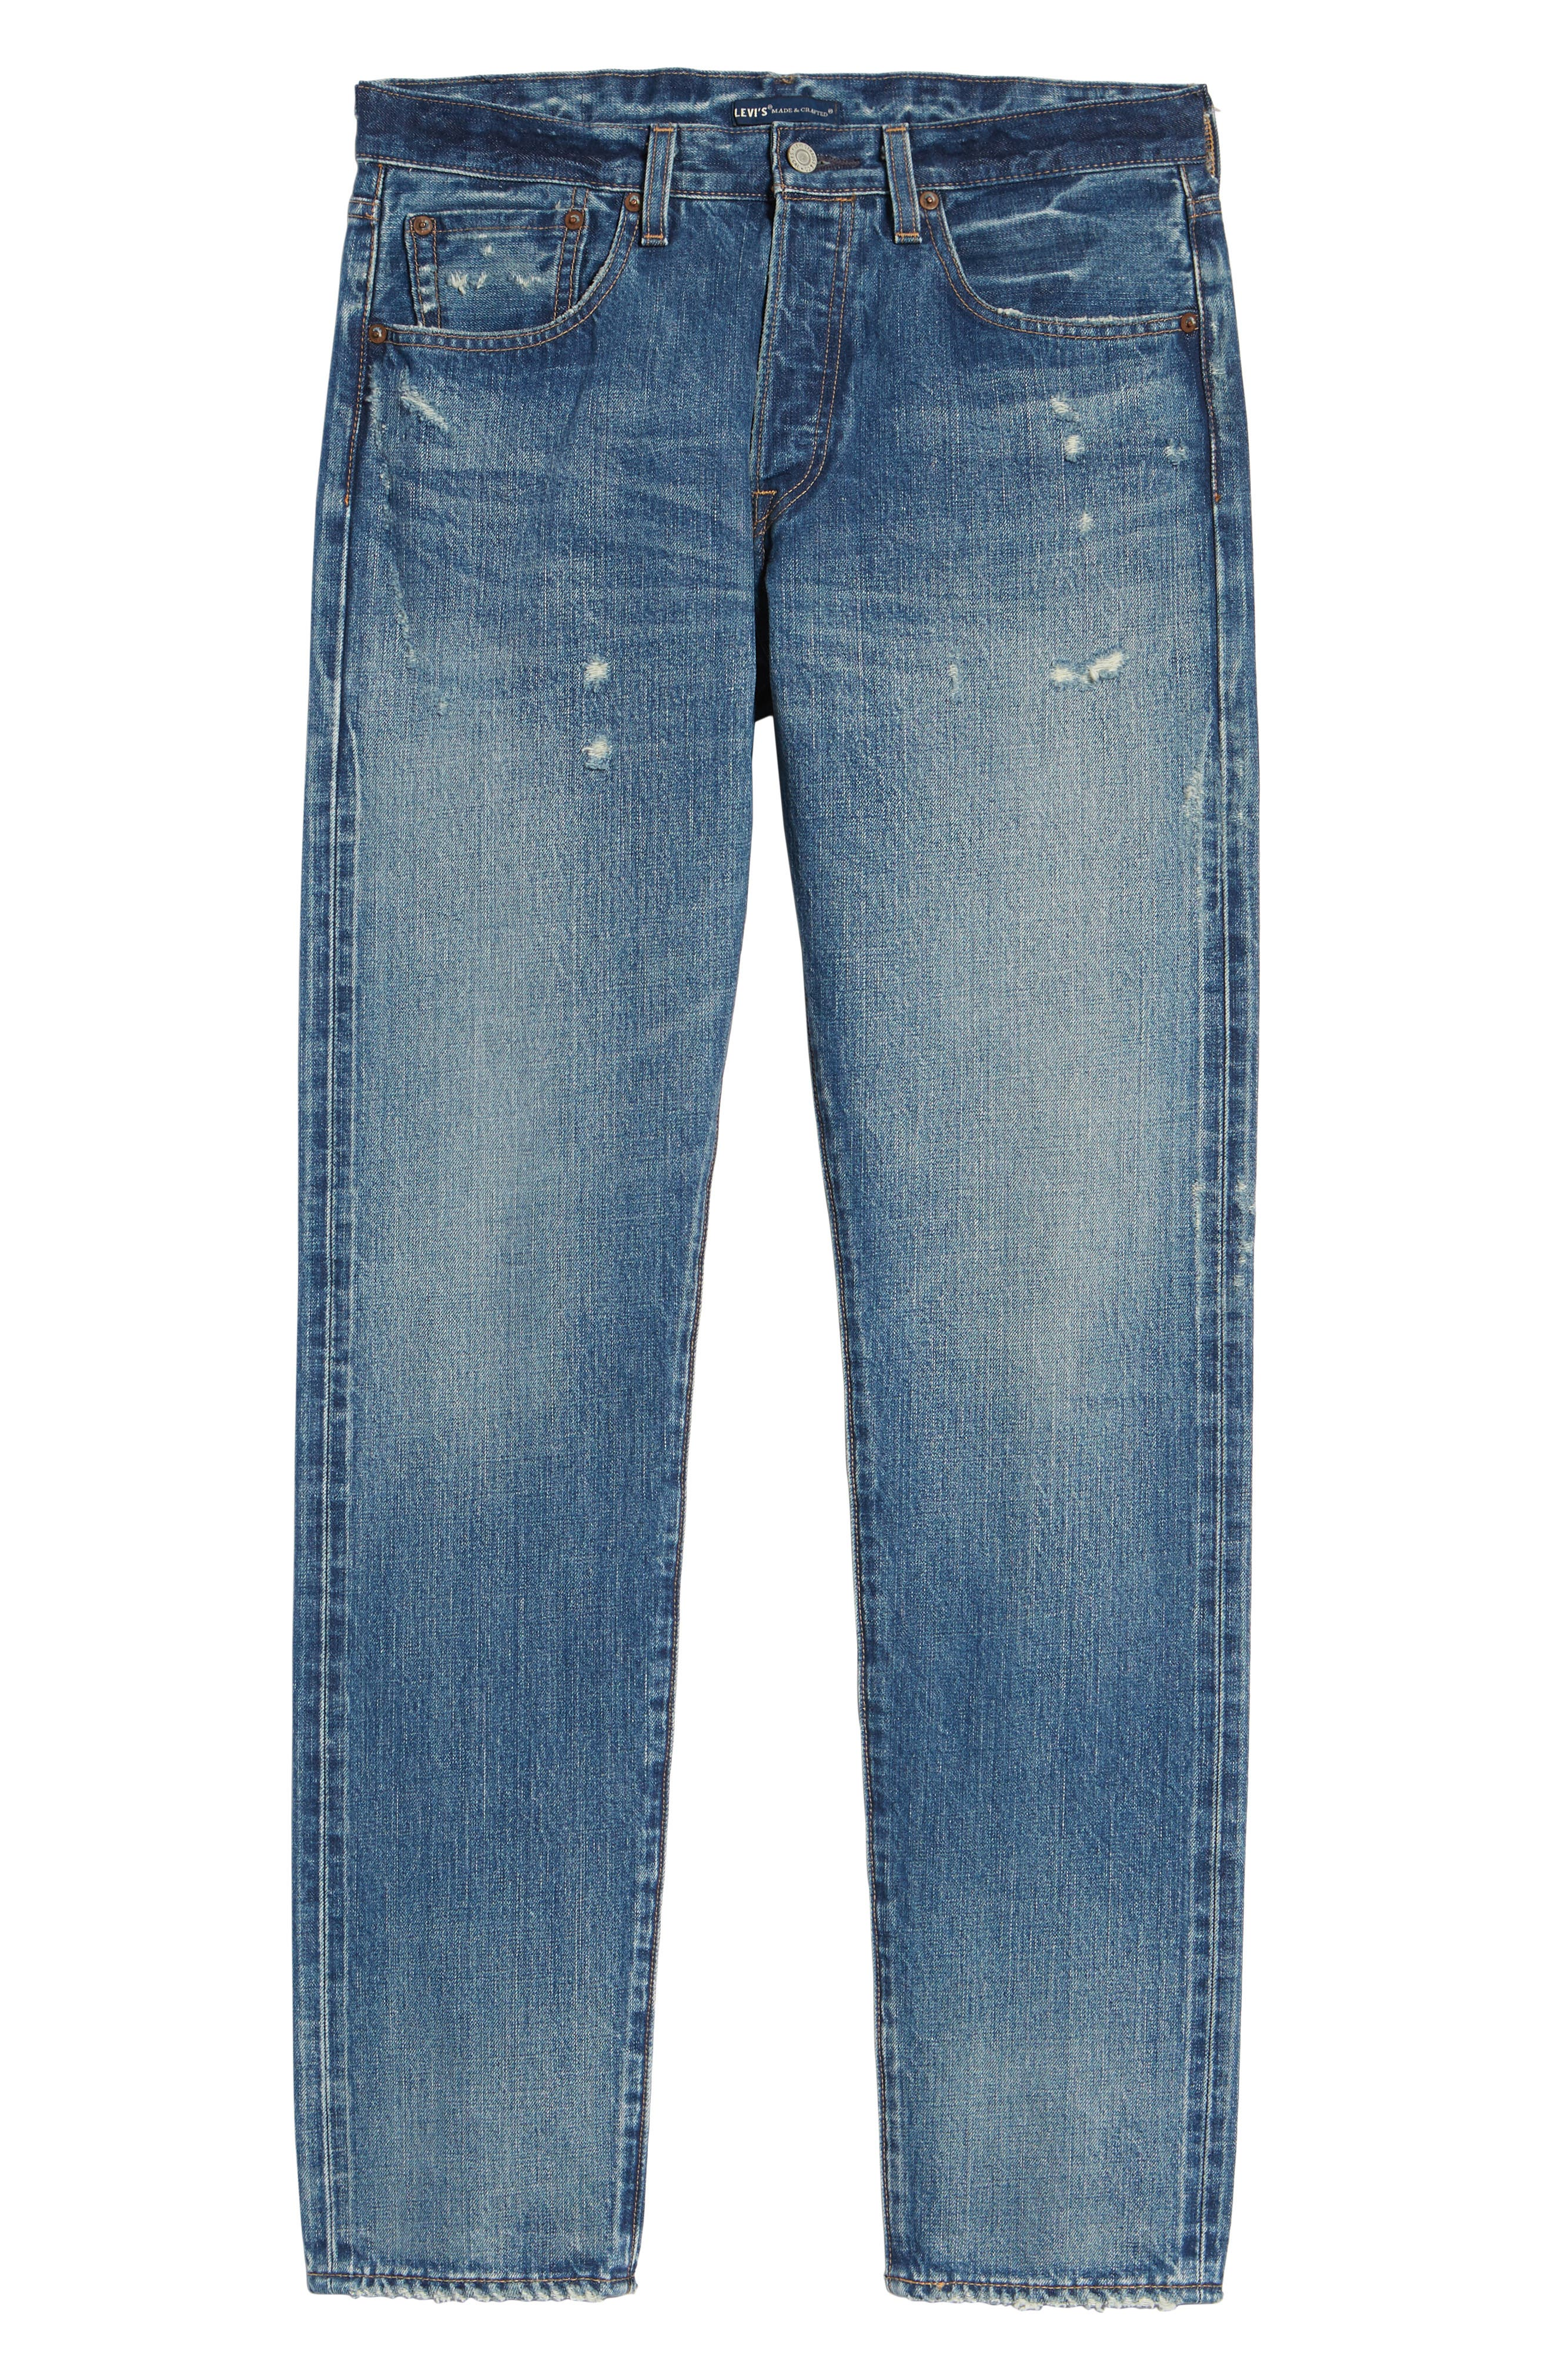 Levi's<sup>®</sup> Made & Crafted 501<sup>™</sup> Slim Fit Tapered Jeans,                             Alternate thumbnail 6, color,                             FOREVER